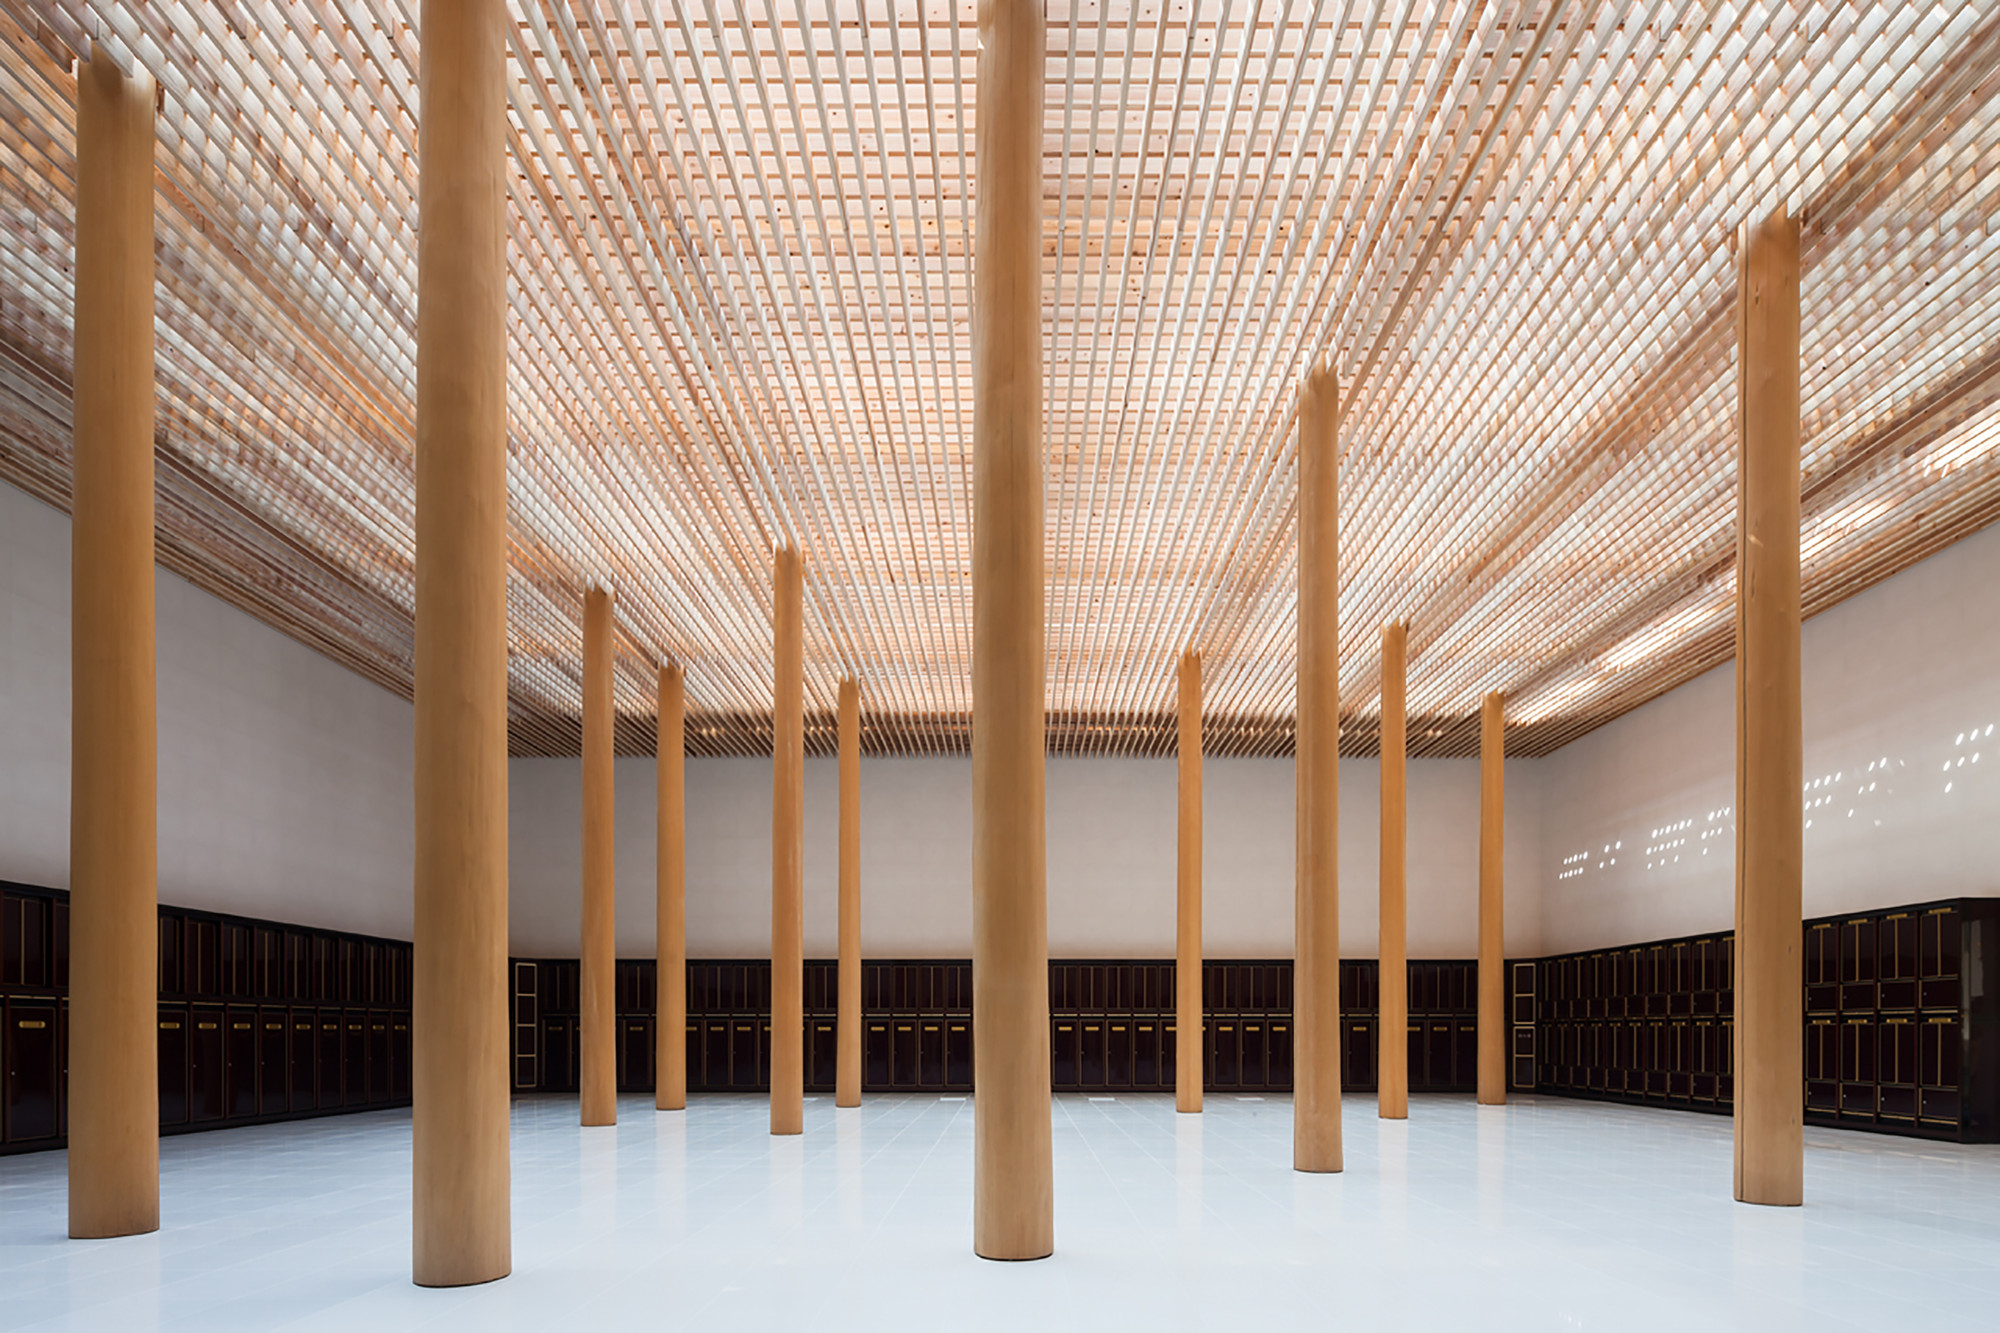 Myoenji columbarium furumori koichi architectural design for Architectural wood columns